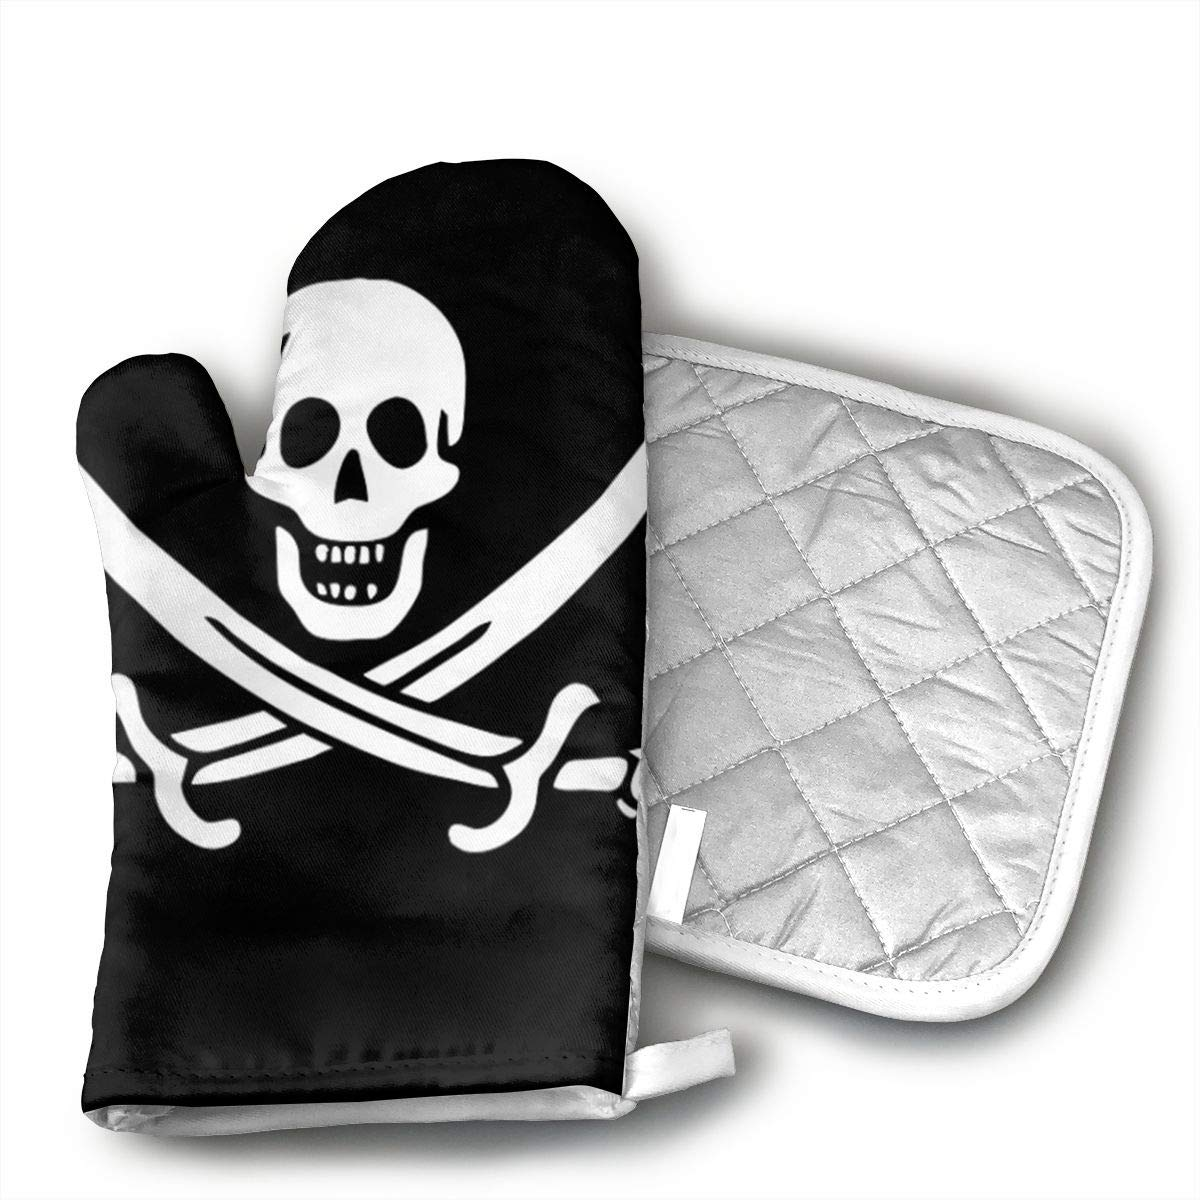 QEDGC Danger Pirate.jpg Oven Mitts Kitchen Cooking Cotton Microwave Oven Gloves Mitts Pot Pad Heat Proof Protected Gloves